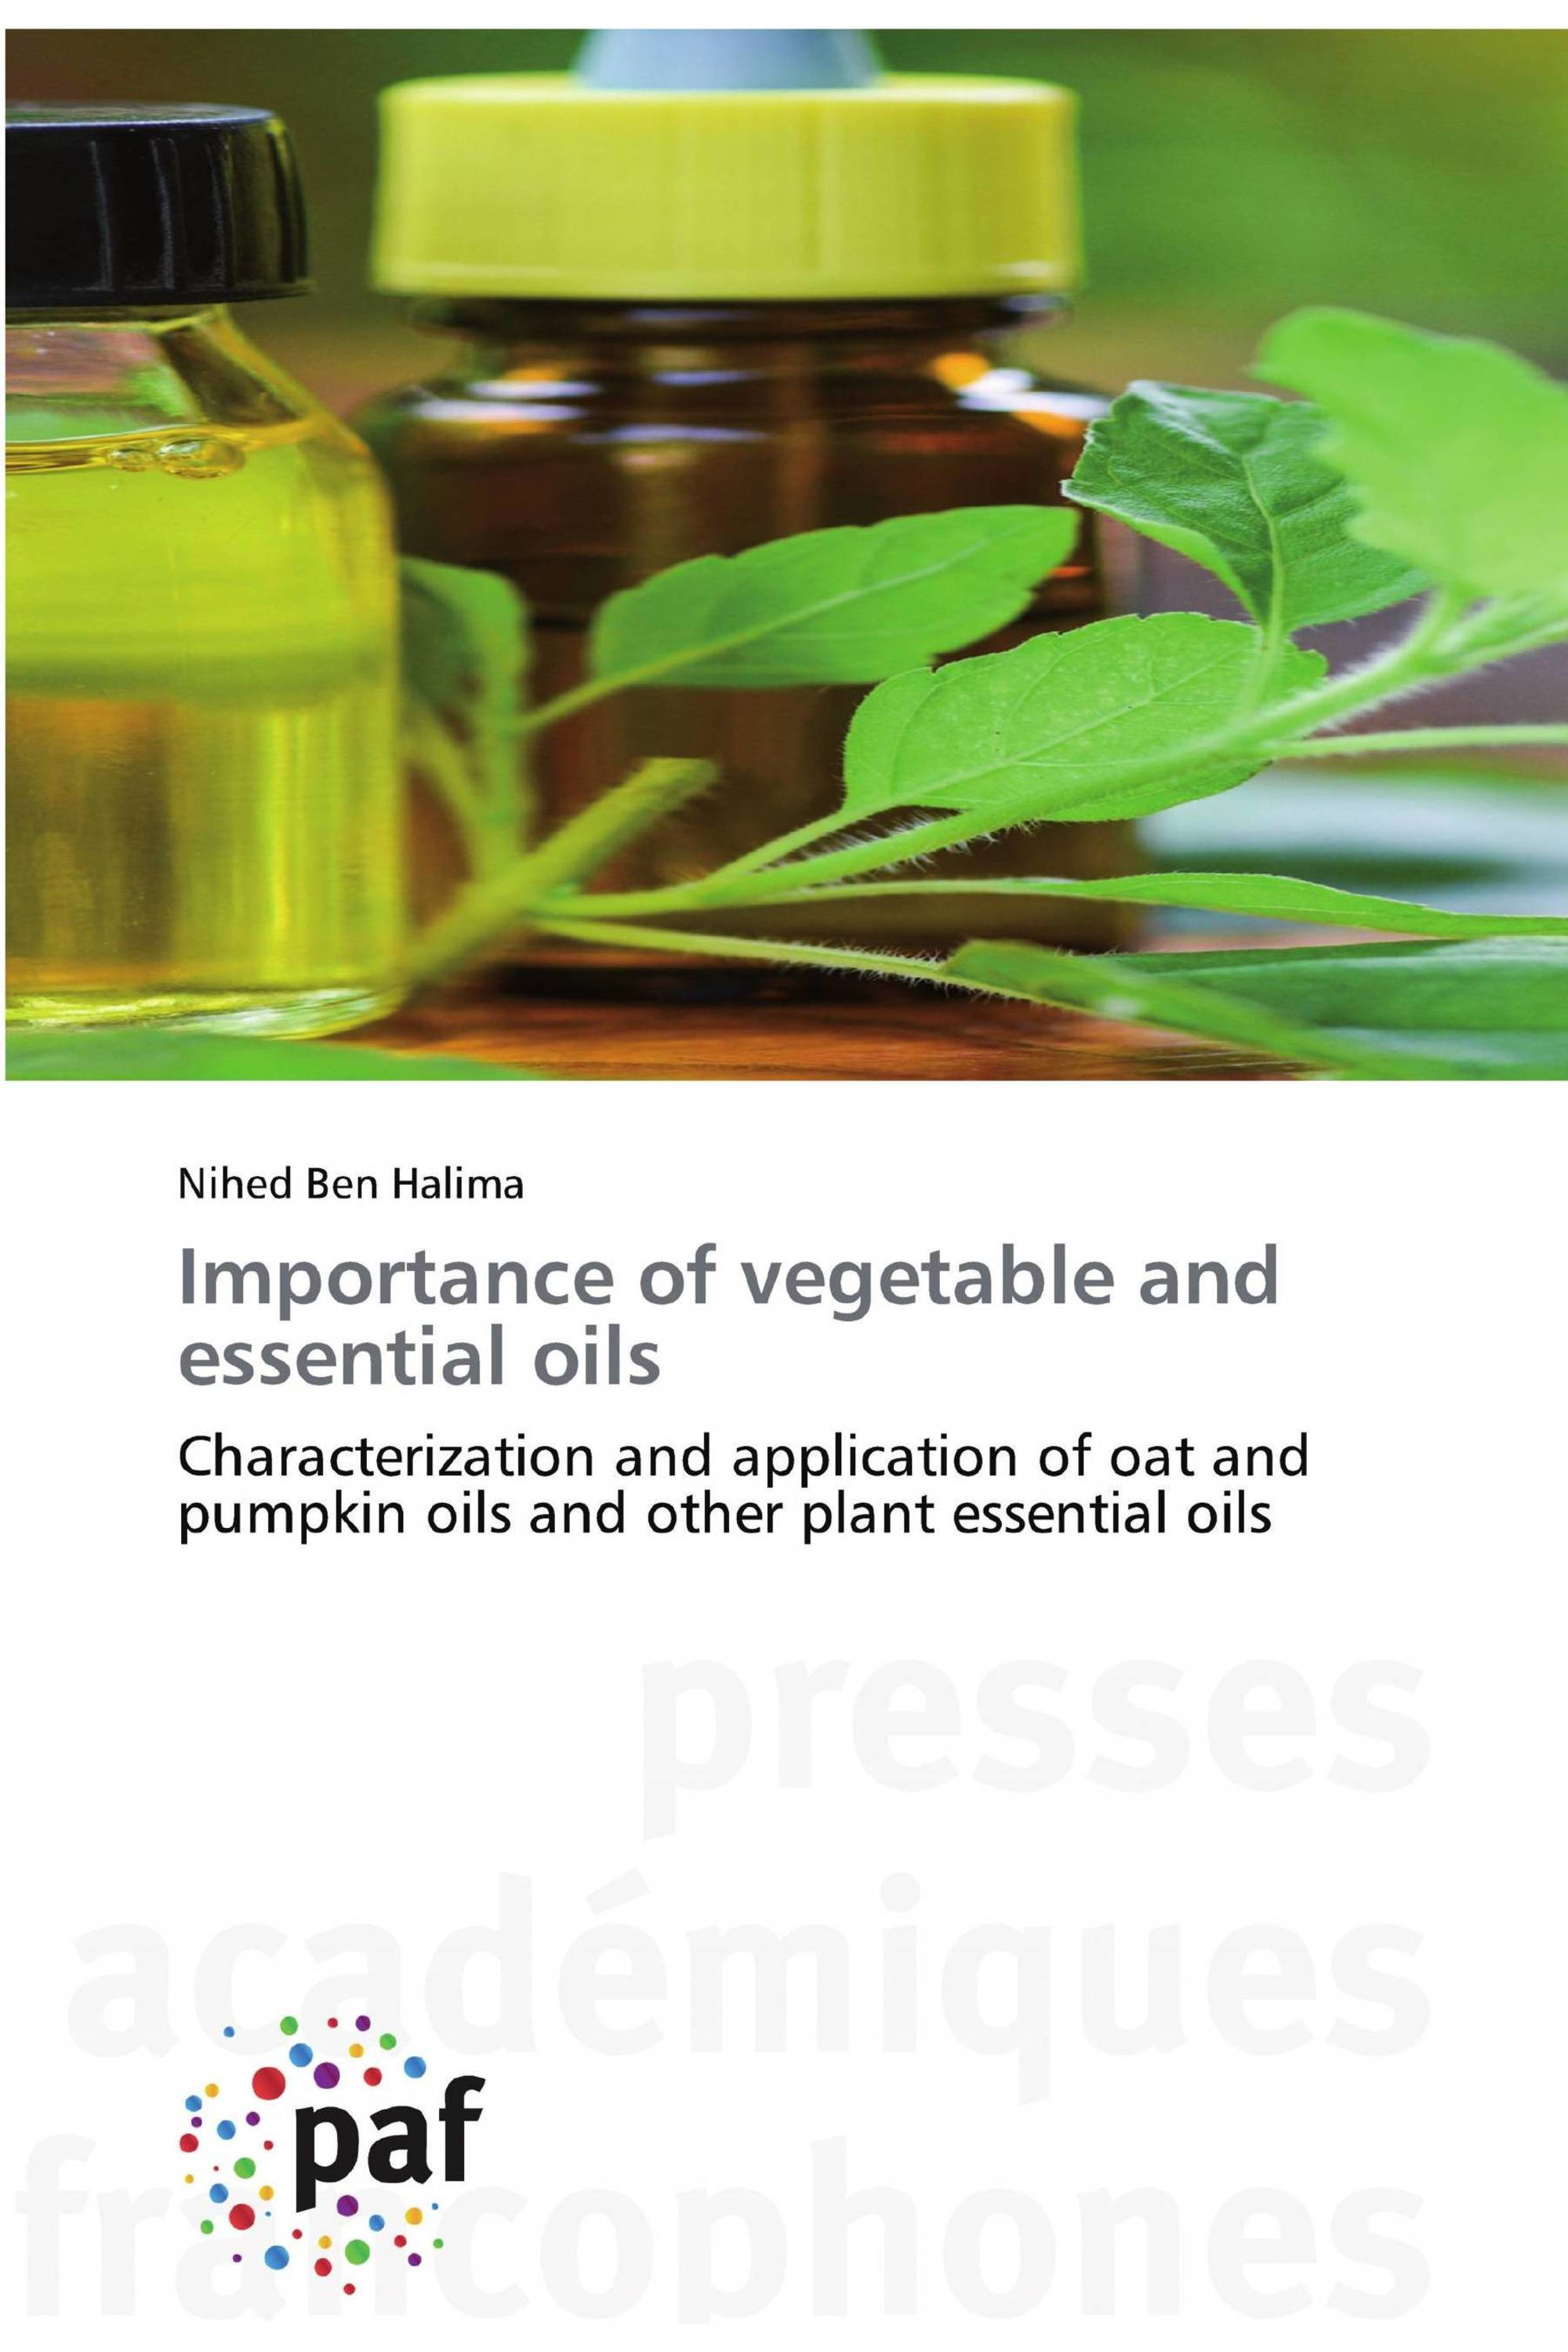 Importance of vegetable and essential oils